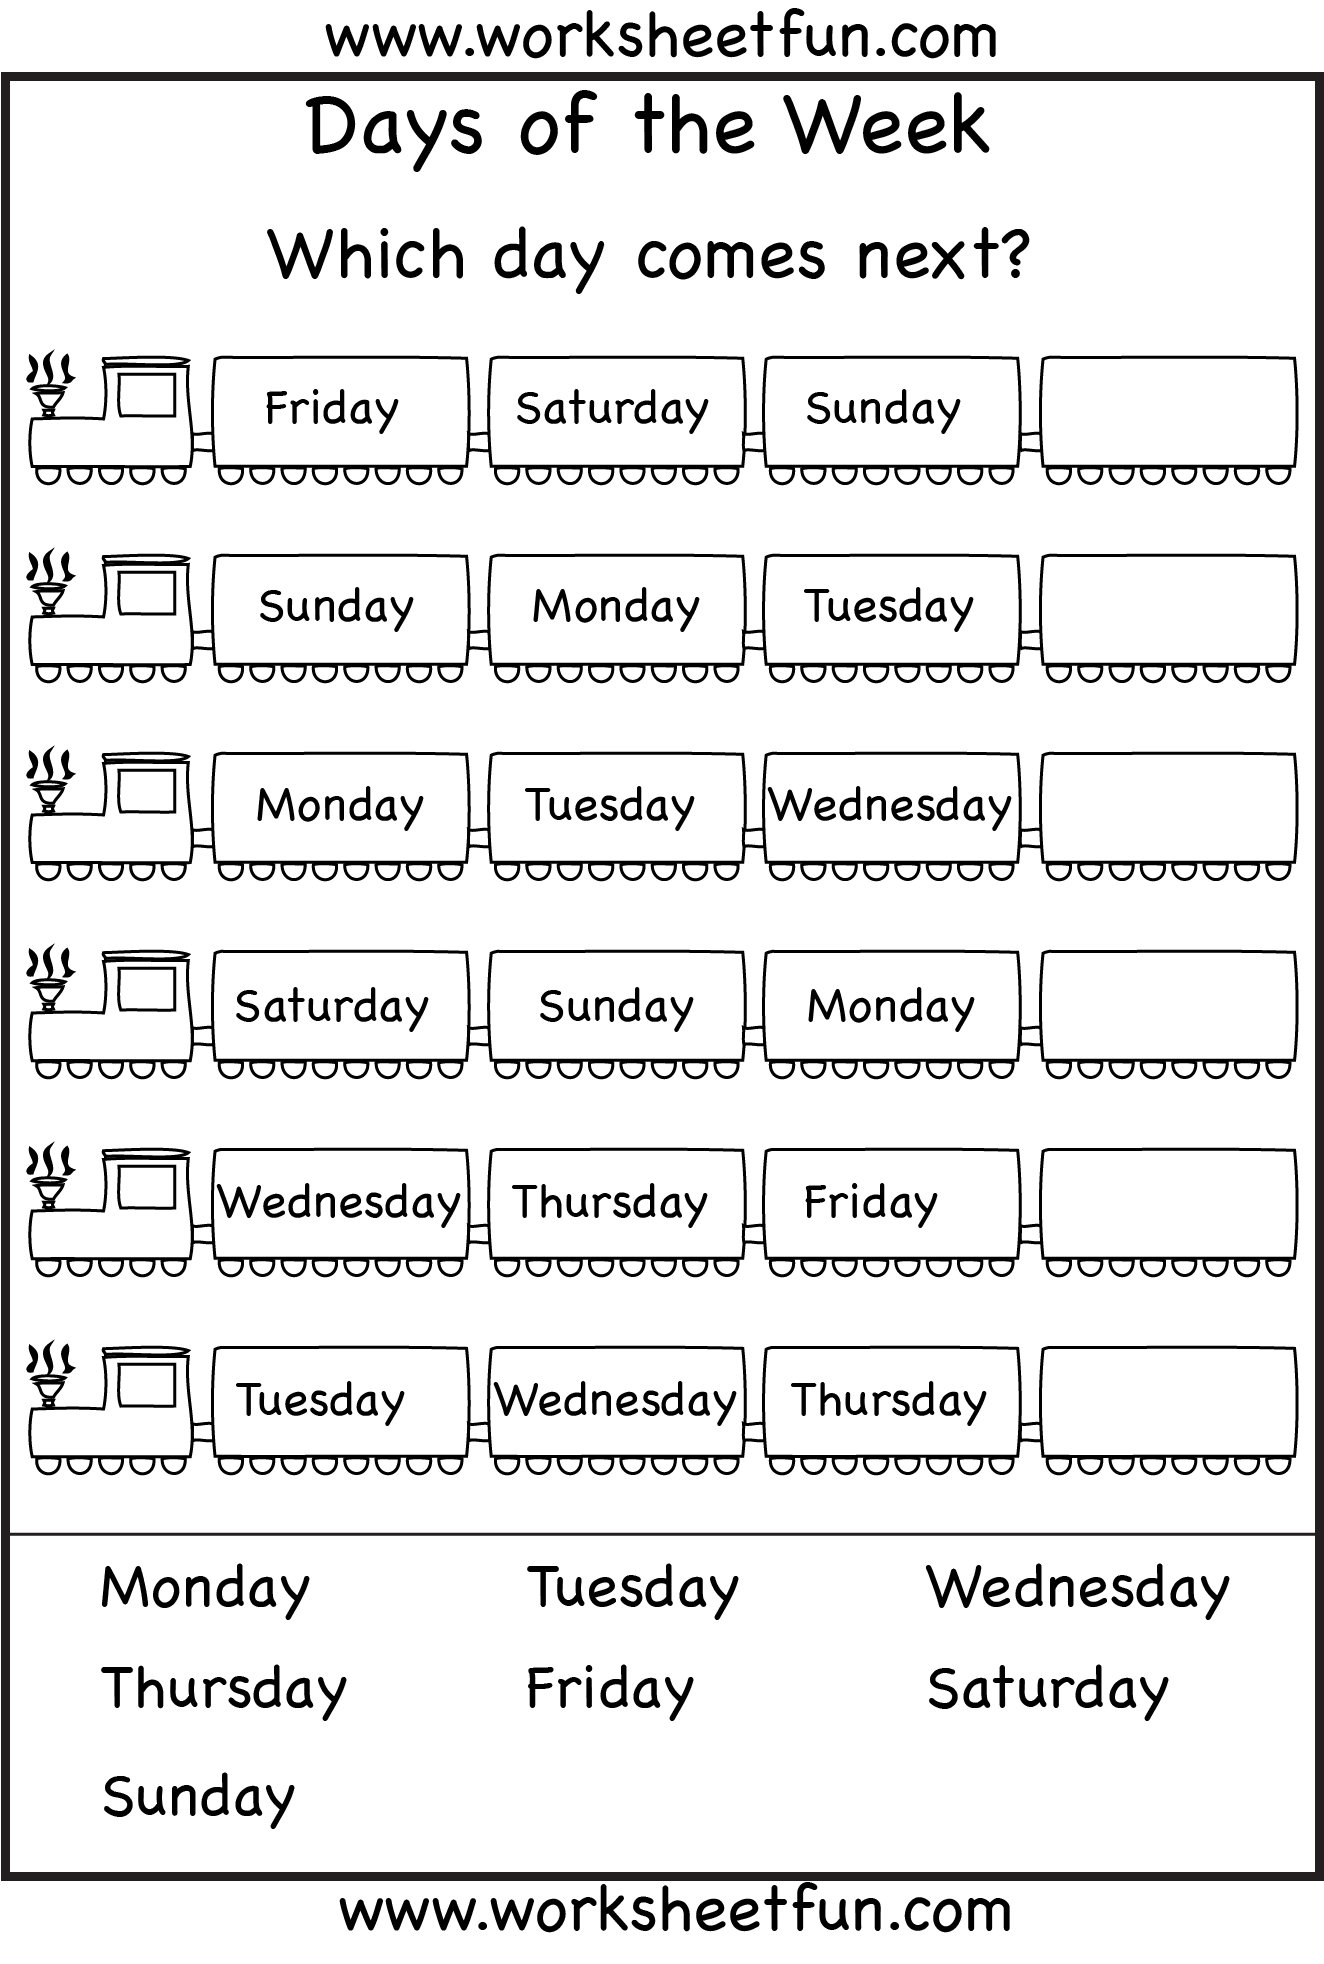 Days Of The Week Worksheet With Images